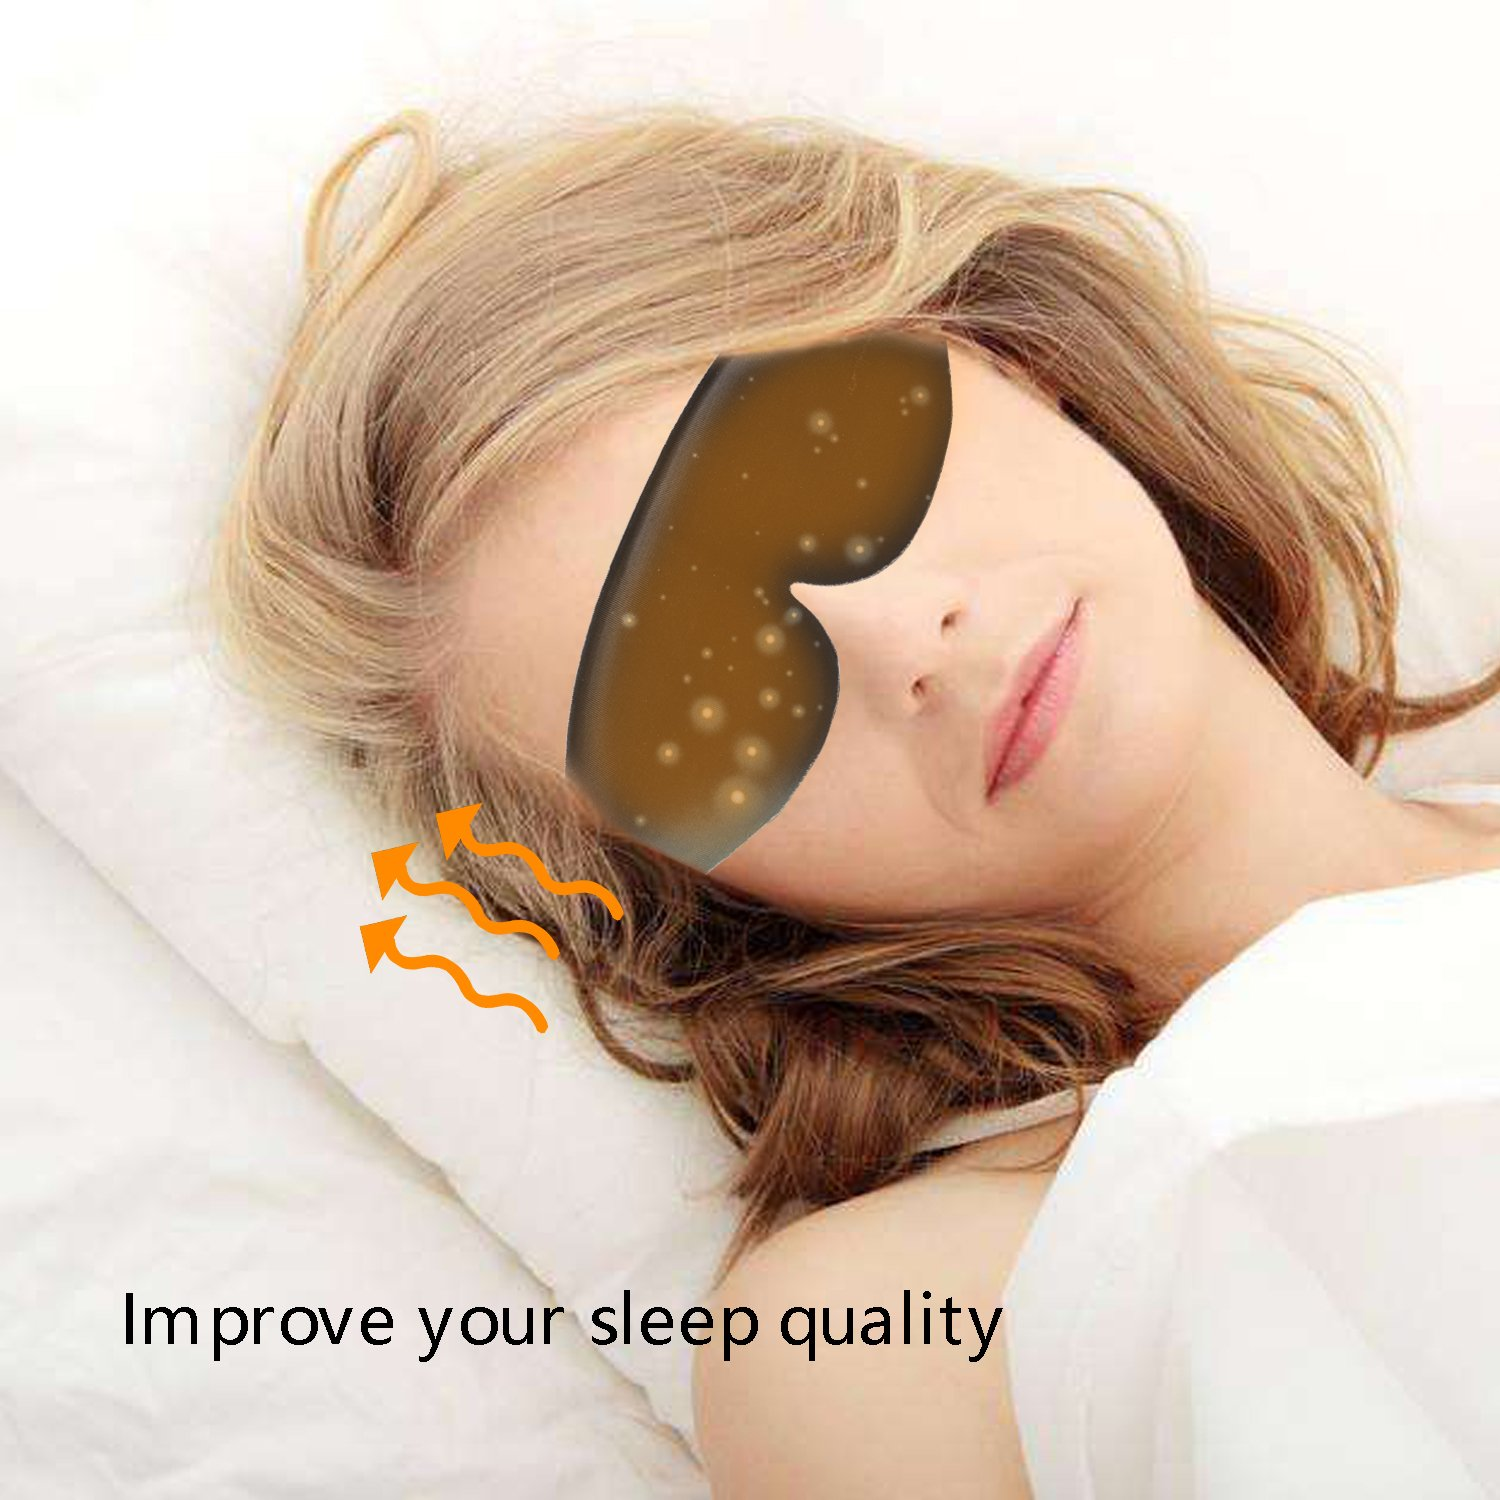 DTNO.I Graphene Eyes Mask Far-infrared Therapy Adjustable Temperature Sleeping USB Heated Eye Massage Mask by DTNO.I (Image #6)